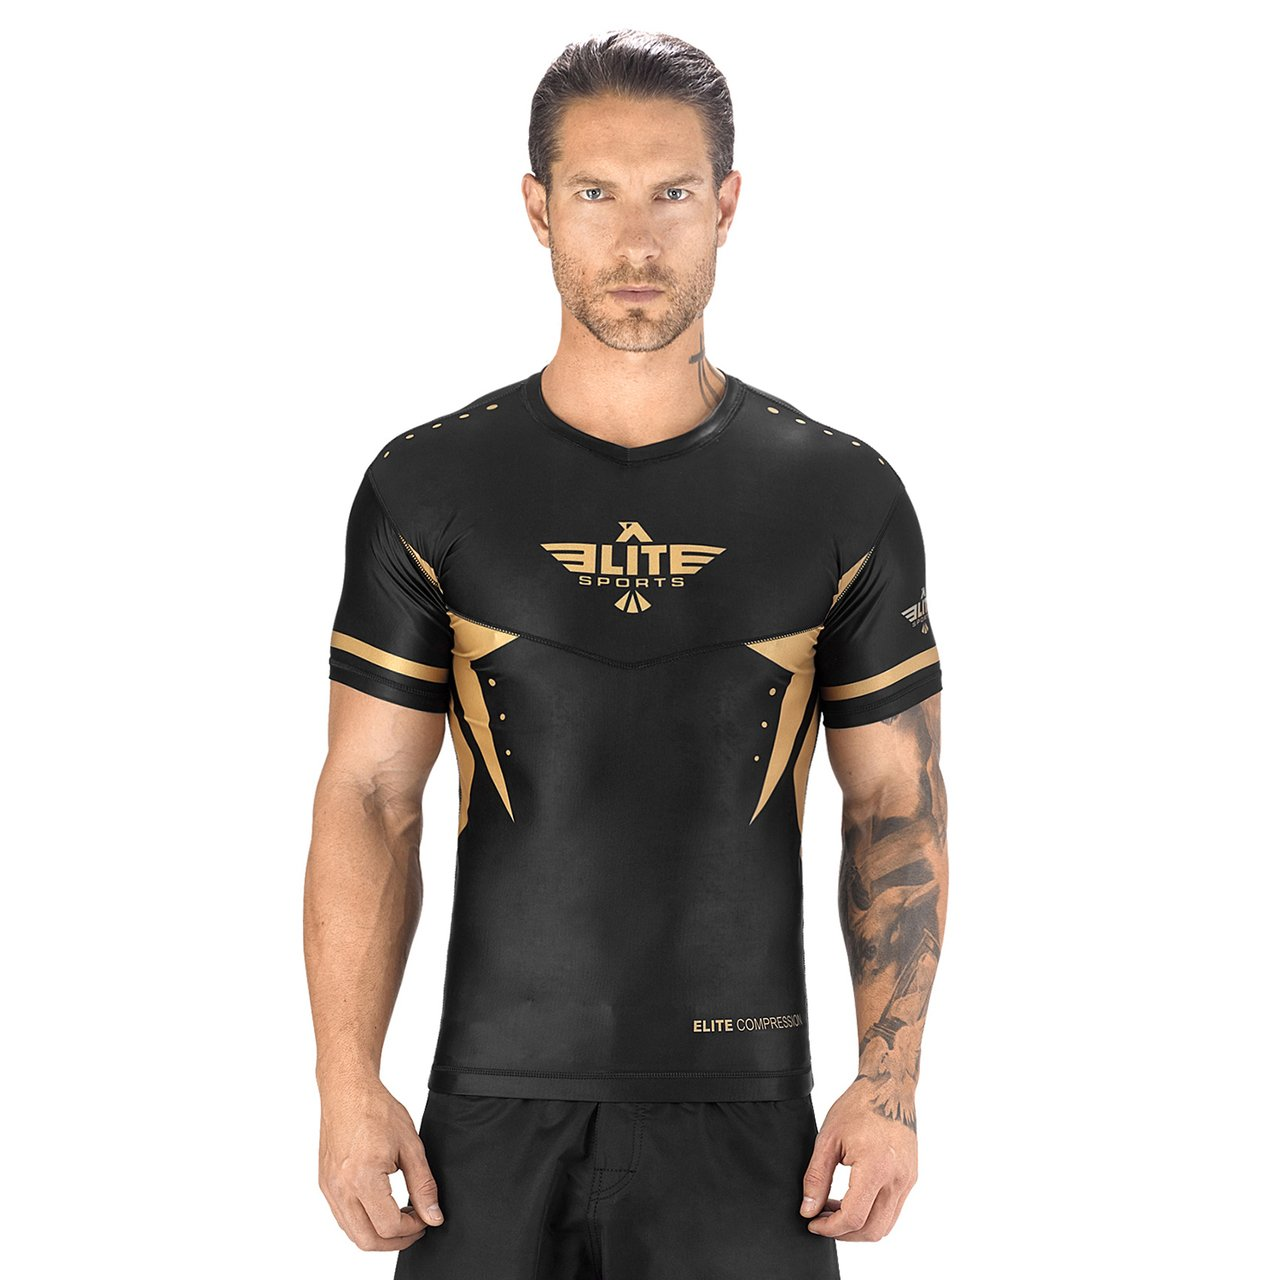 Elite Sports Star Series Sublimation Black/Gold Short Sleeve Judo Rash Guard